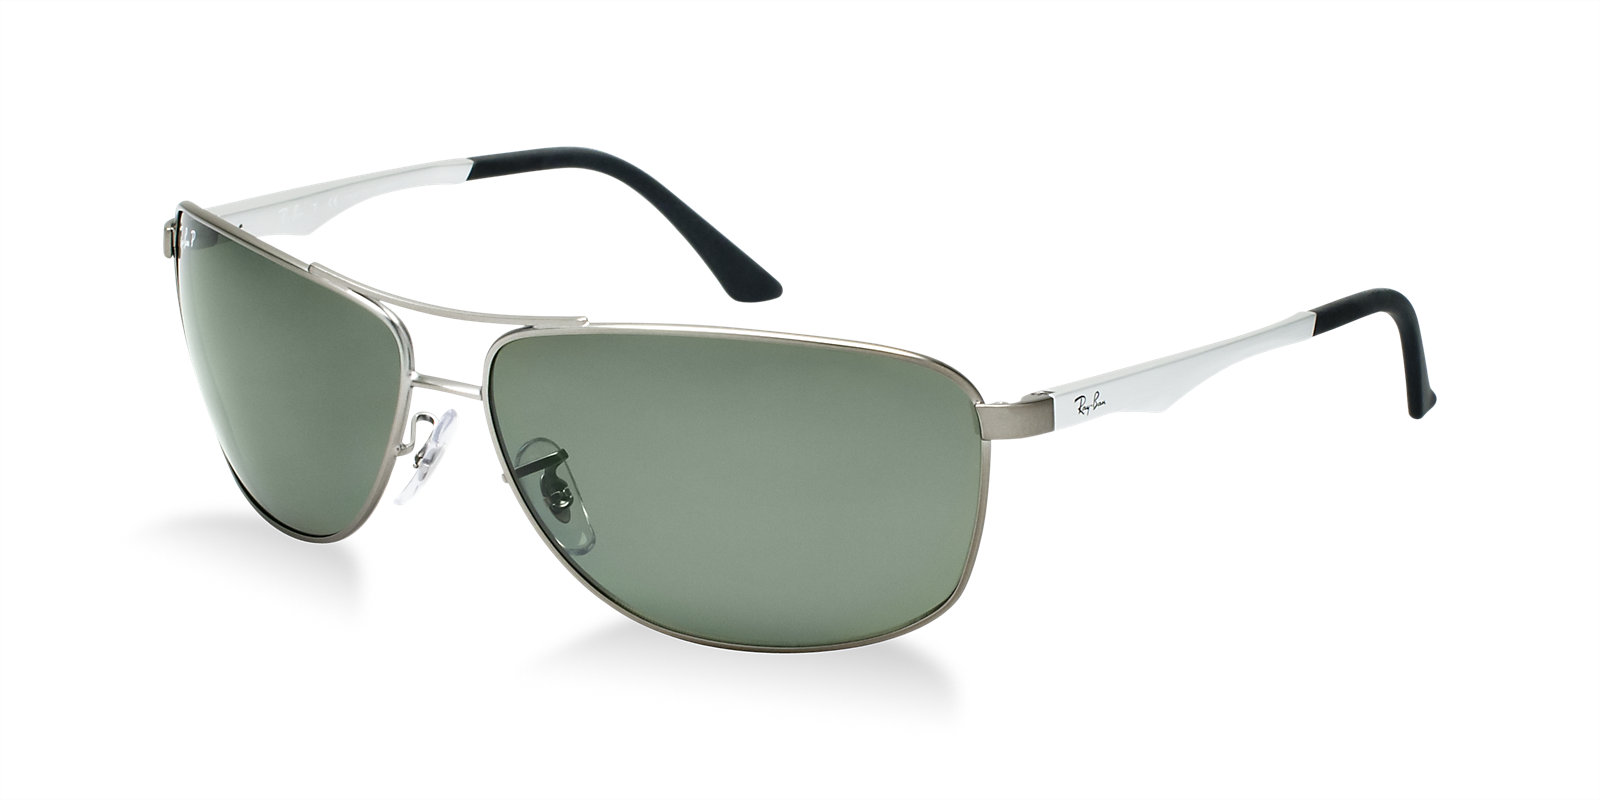 Ray-Ban-Sunglasses-for-Men (17)